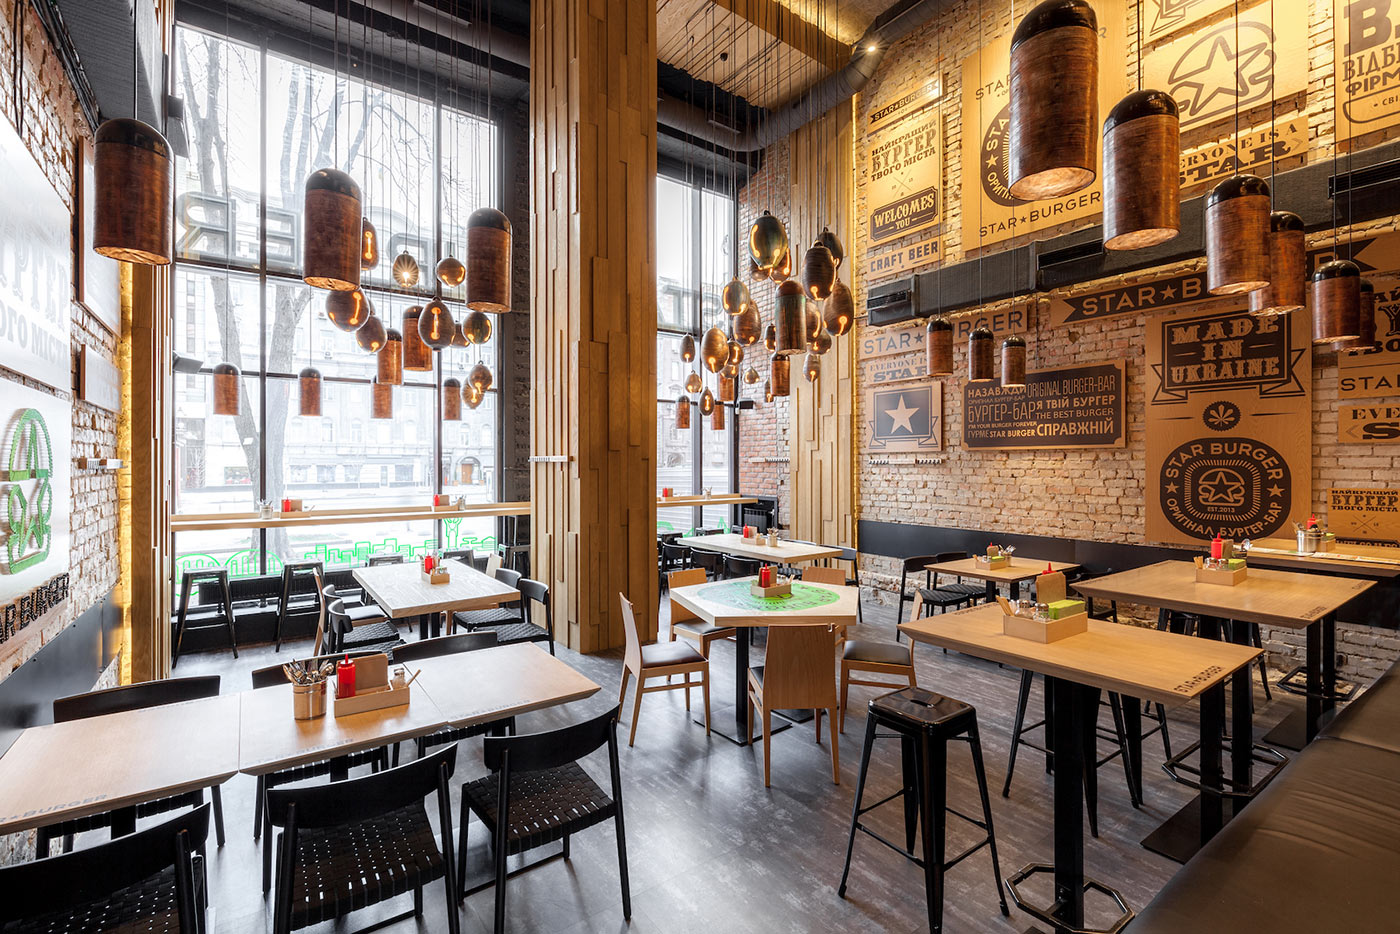 Star Burger: An Industrial Restaurant Design u2013 Adorable Home